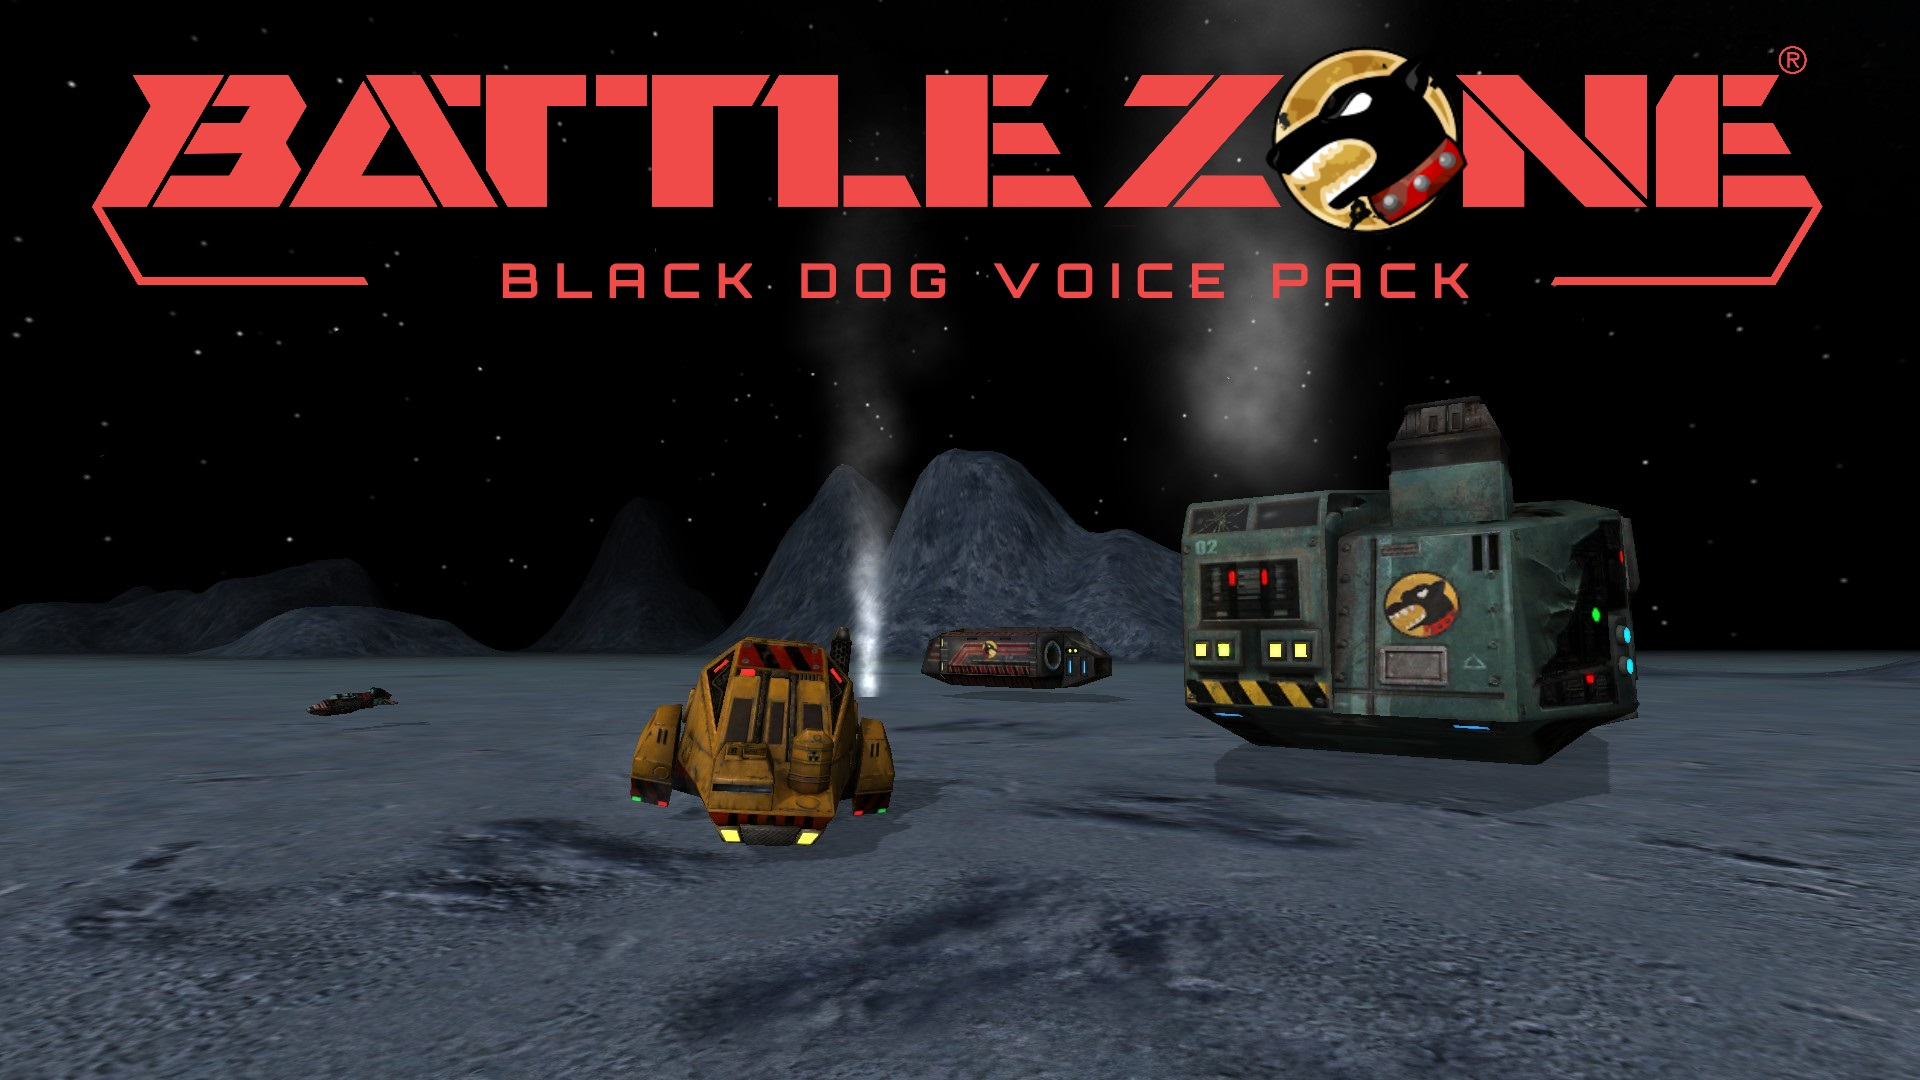 Black Dog Voice Pack